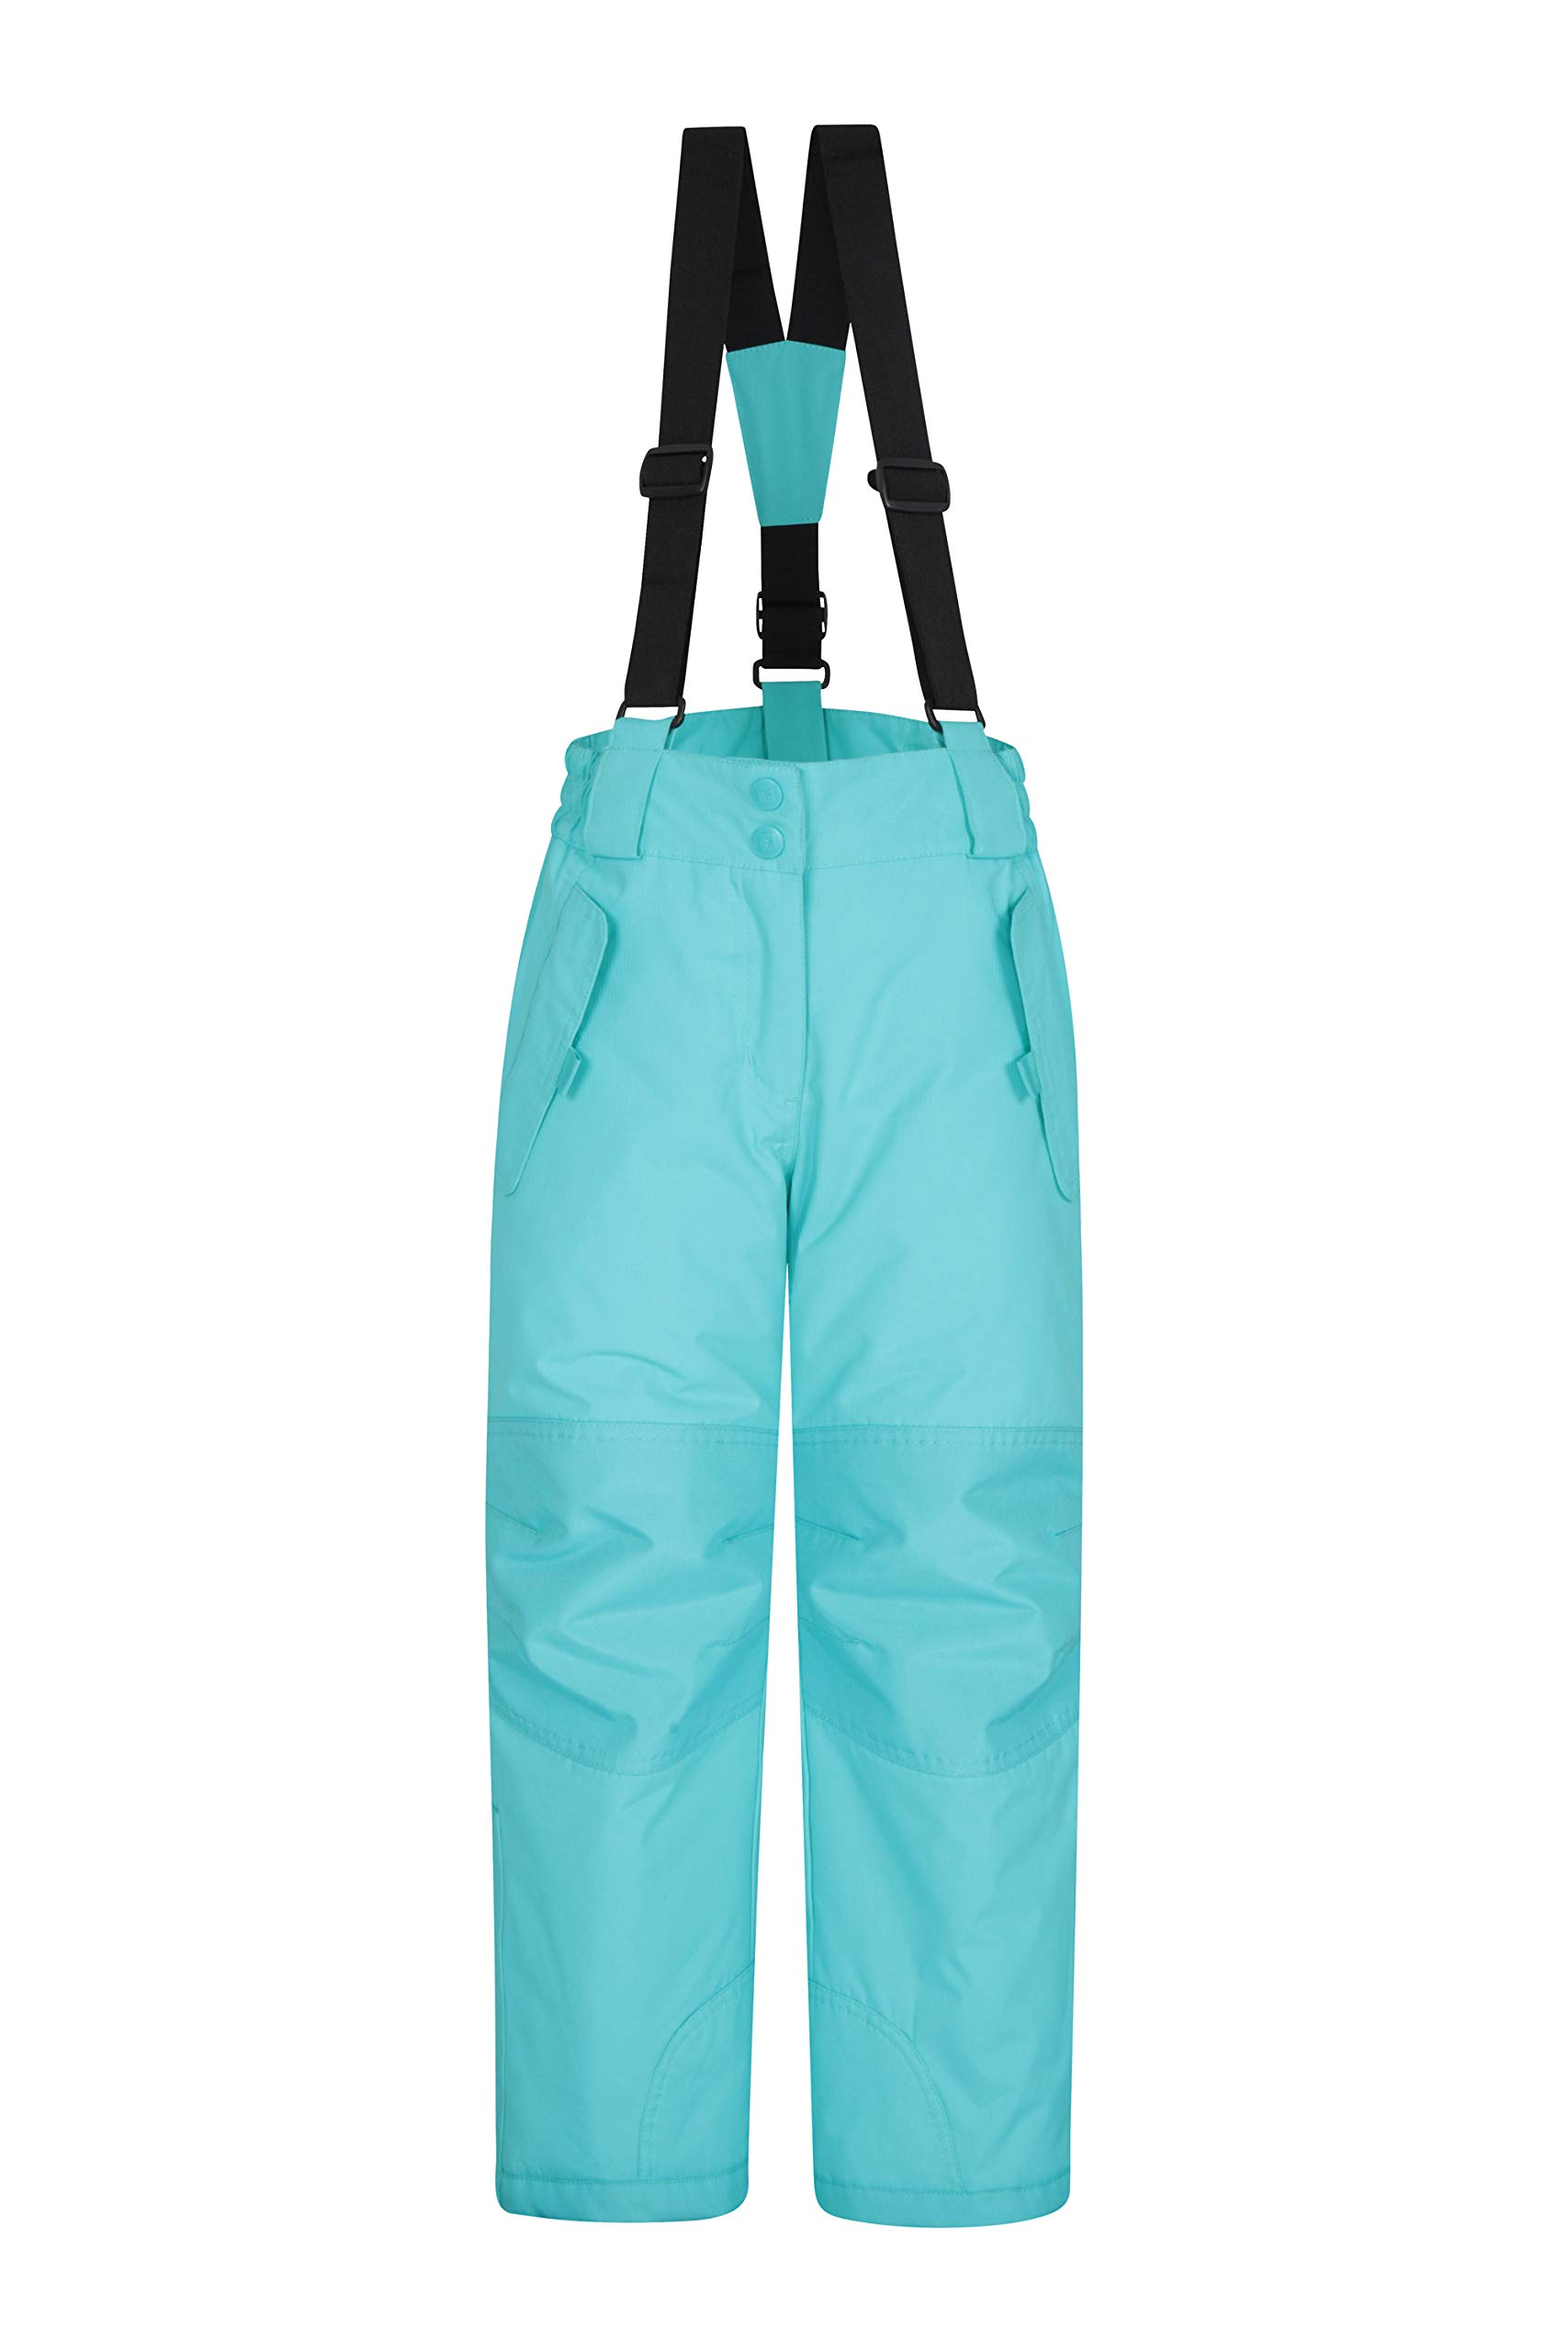 Mountain Warehouse Honey Kids Snow Pants - Boys